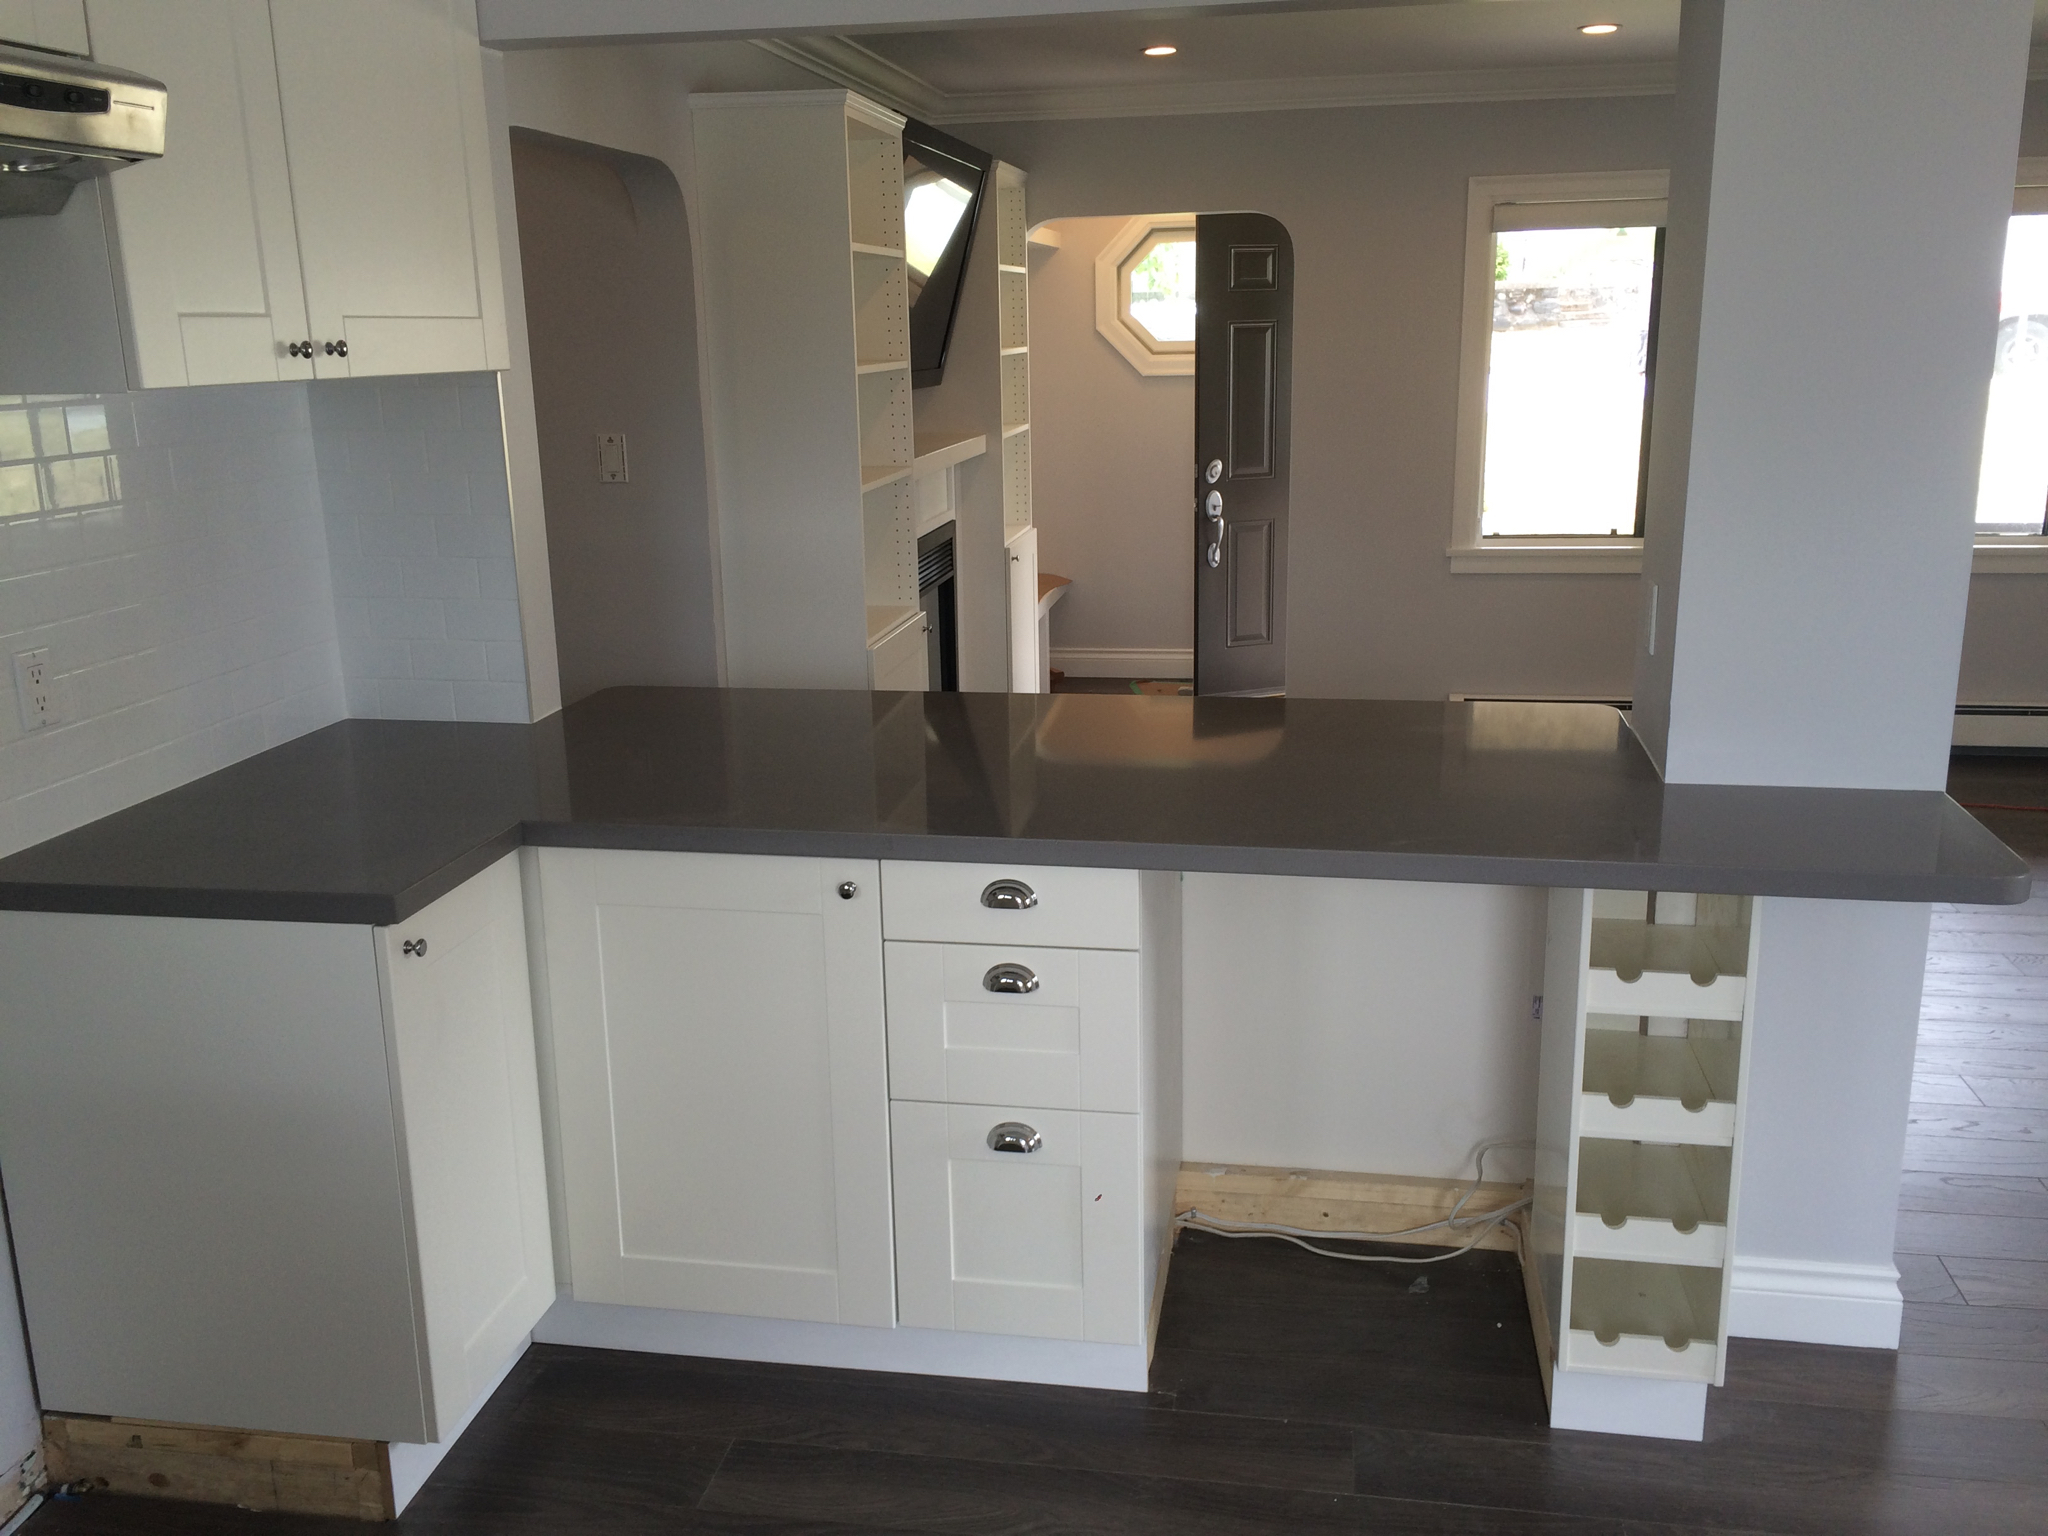 Reece Residence- Summer 2016 - Wall removal + beam installation = wide open new kitchen